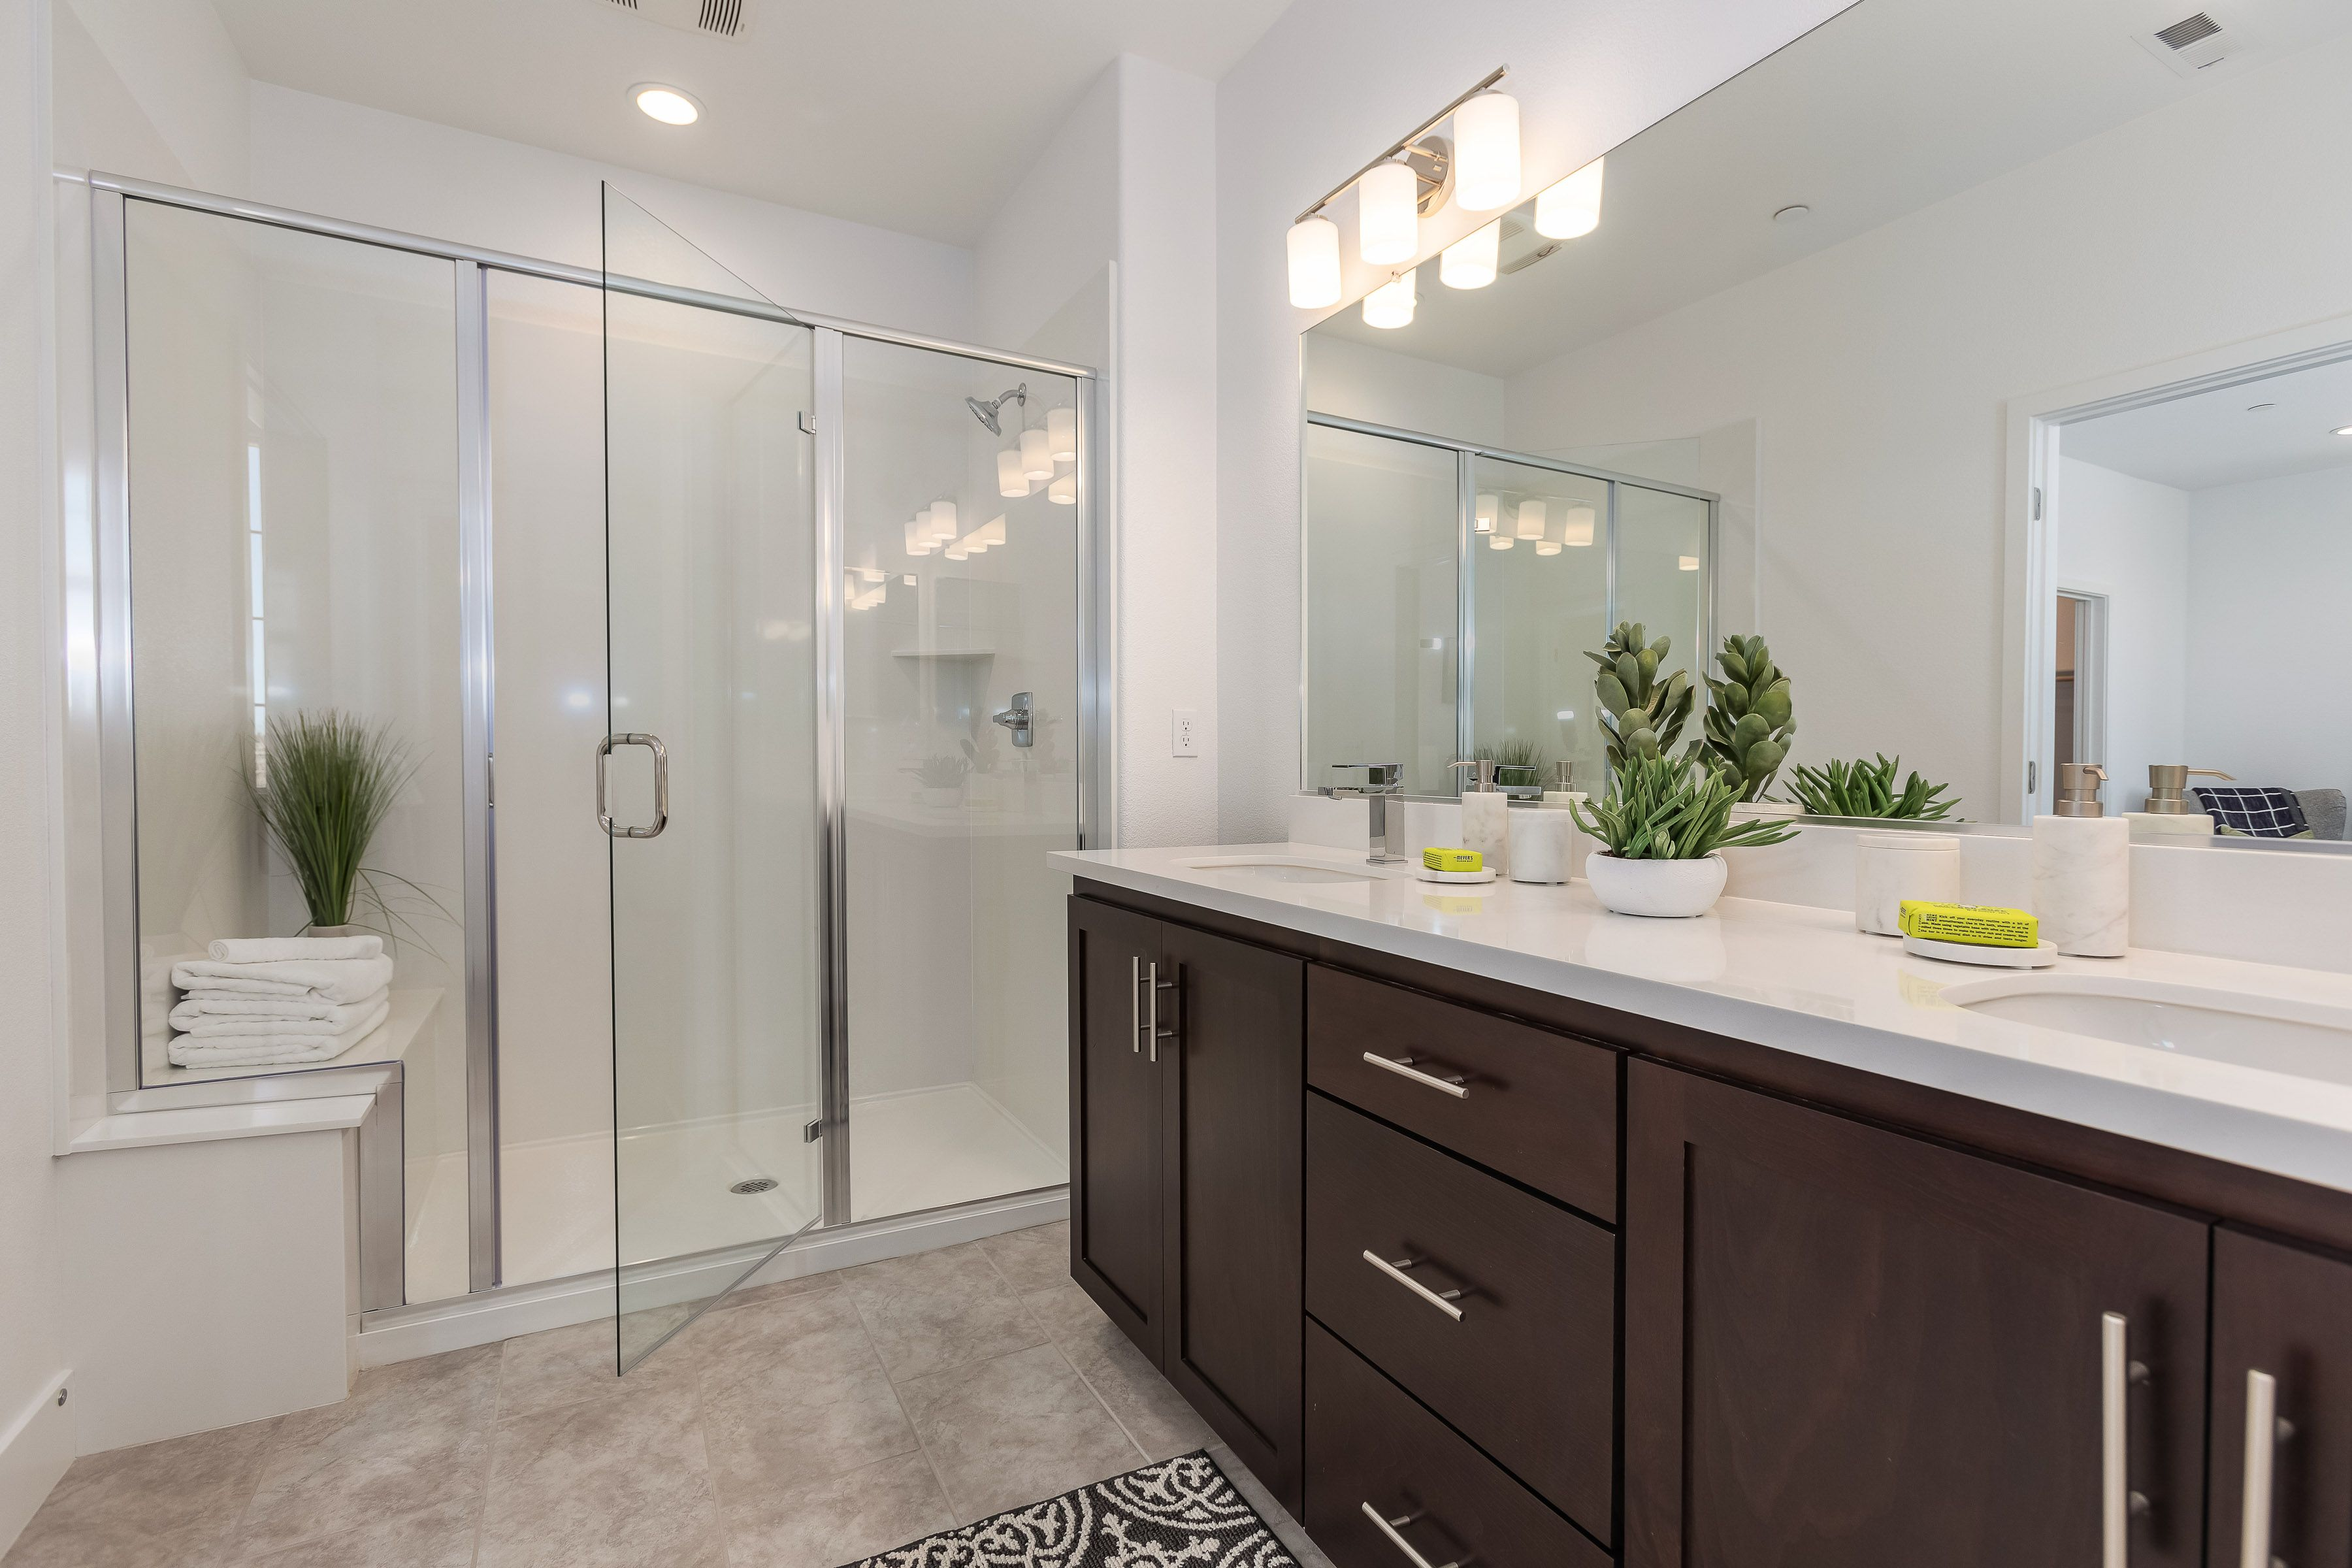 Bathroom featured in the Plan 4 WLH By Taylor Morrison in Oakland-Alameda, CA